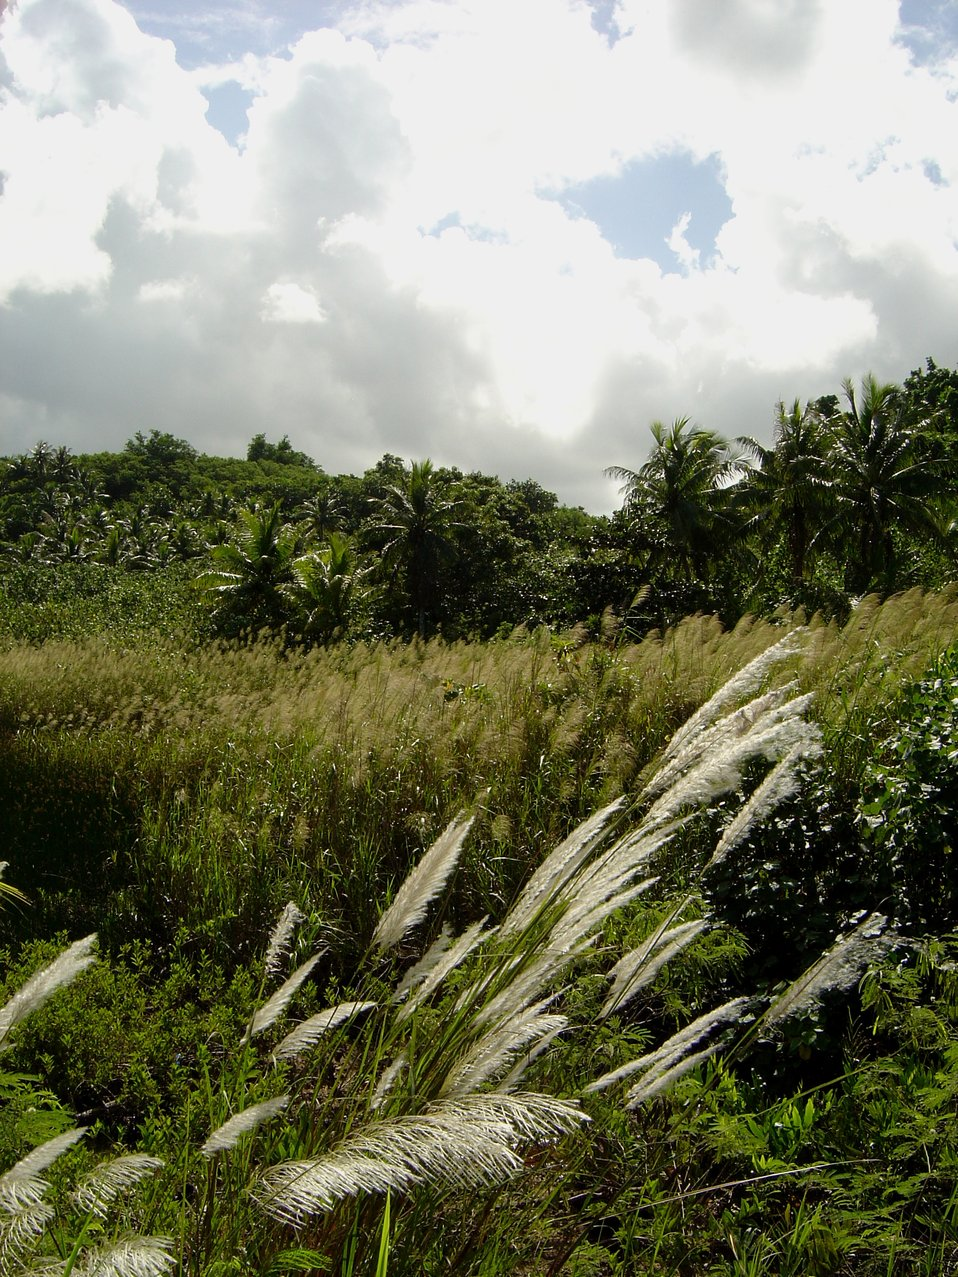 Phragmites marshland in wetlands of Guam.